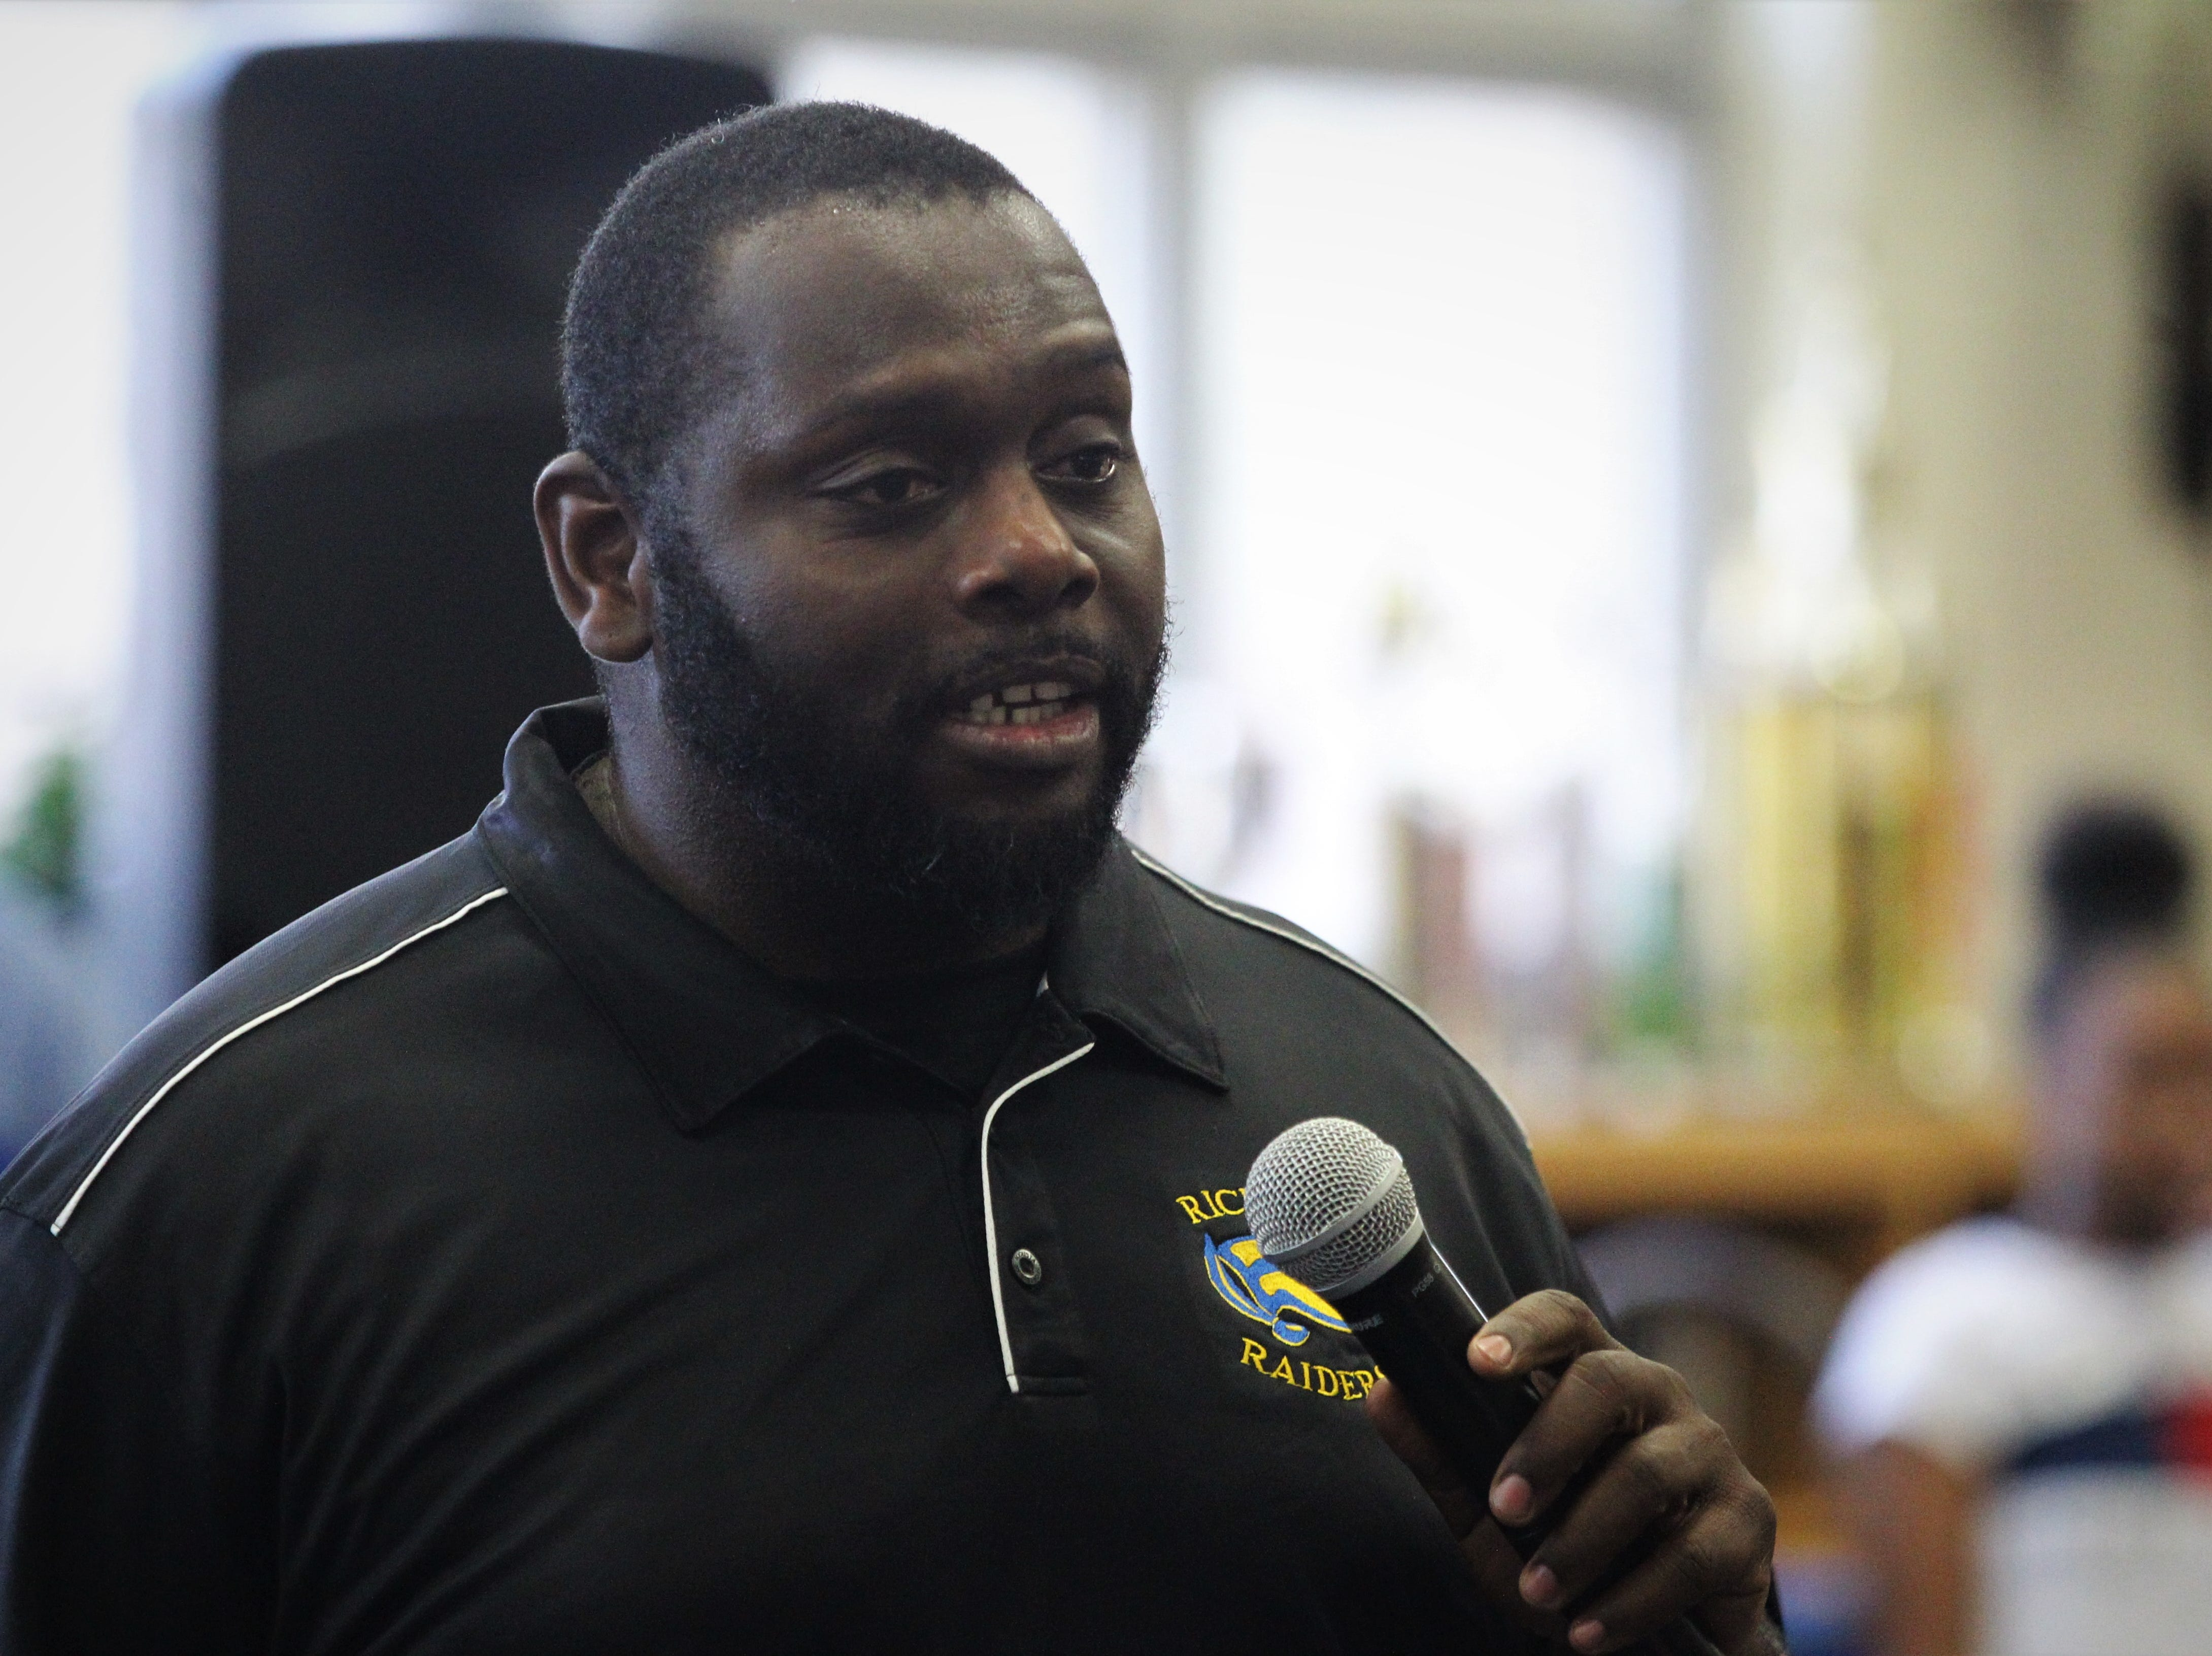 Rickards football coach Quintin Lewis talks during signing ceremonies on National Signing Day, Feb. 6, 2019.